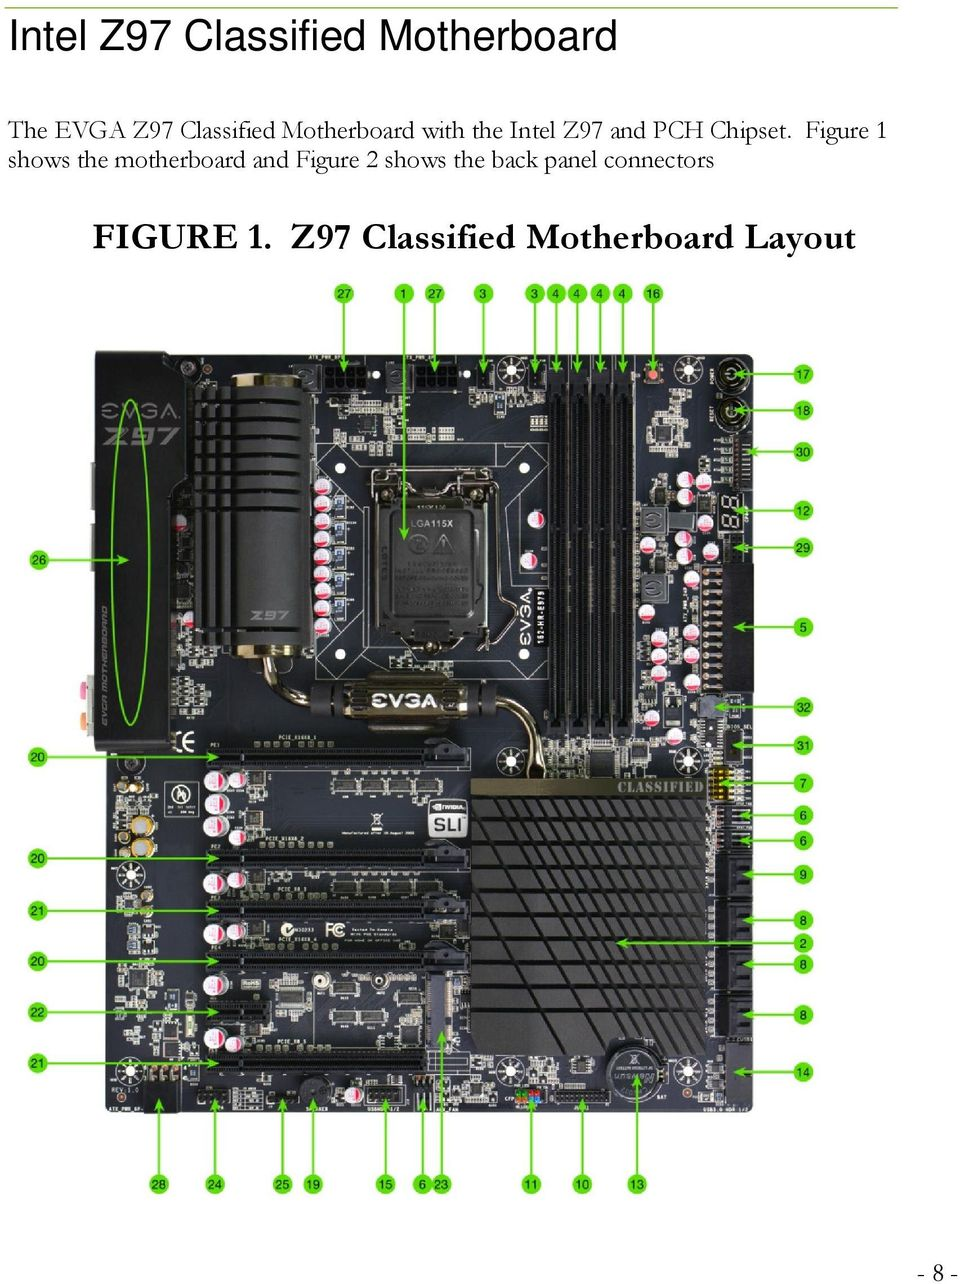 Figure 1 shows the motherboard and Figure 2 shows the